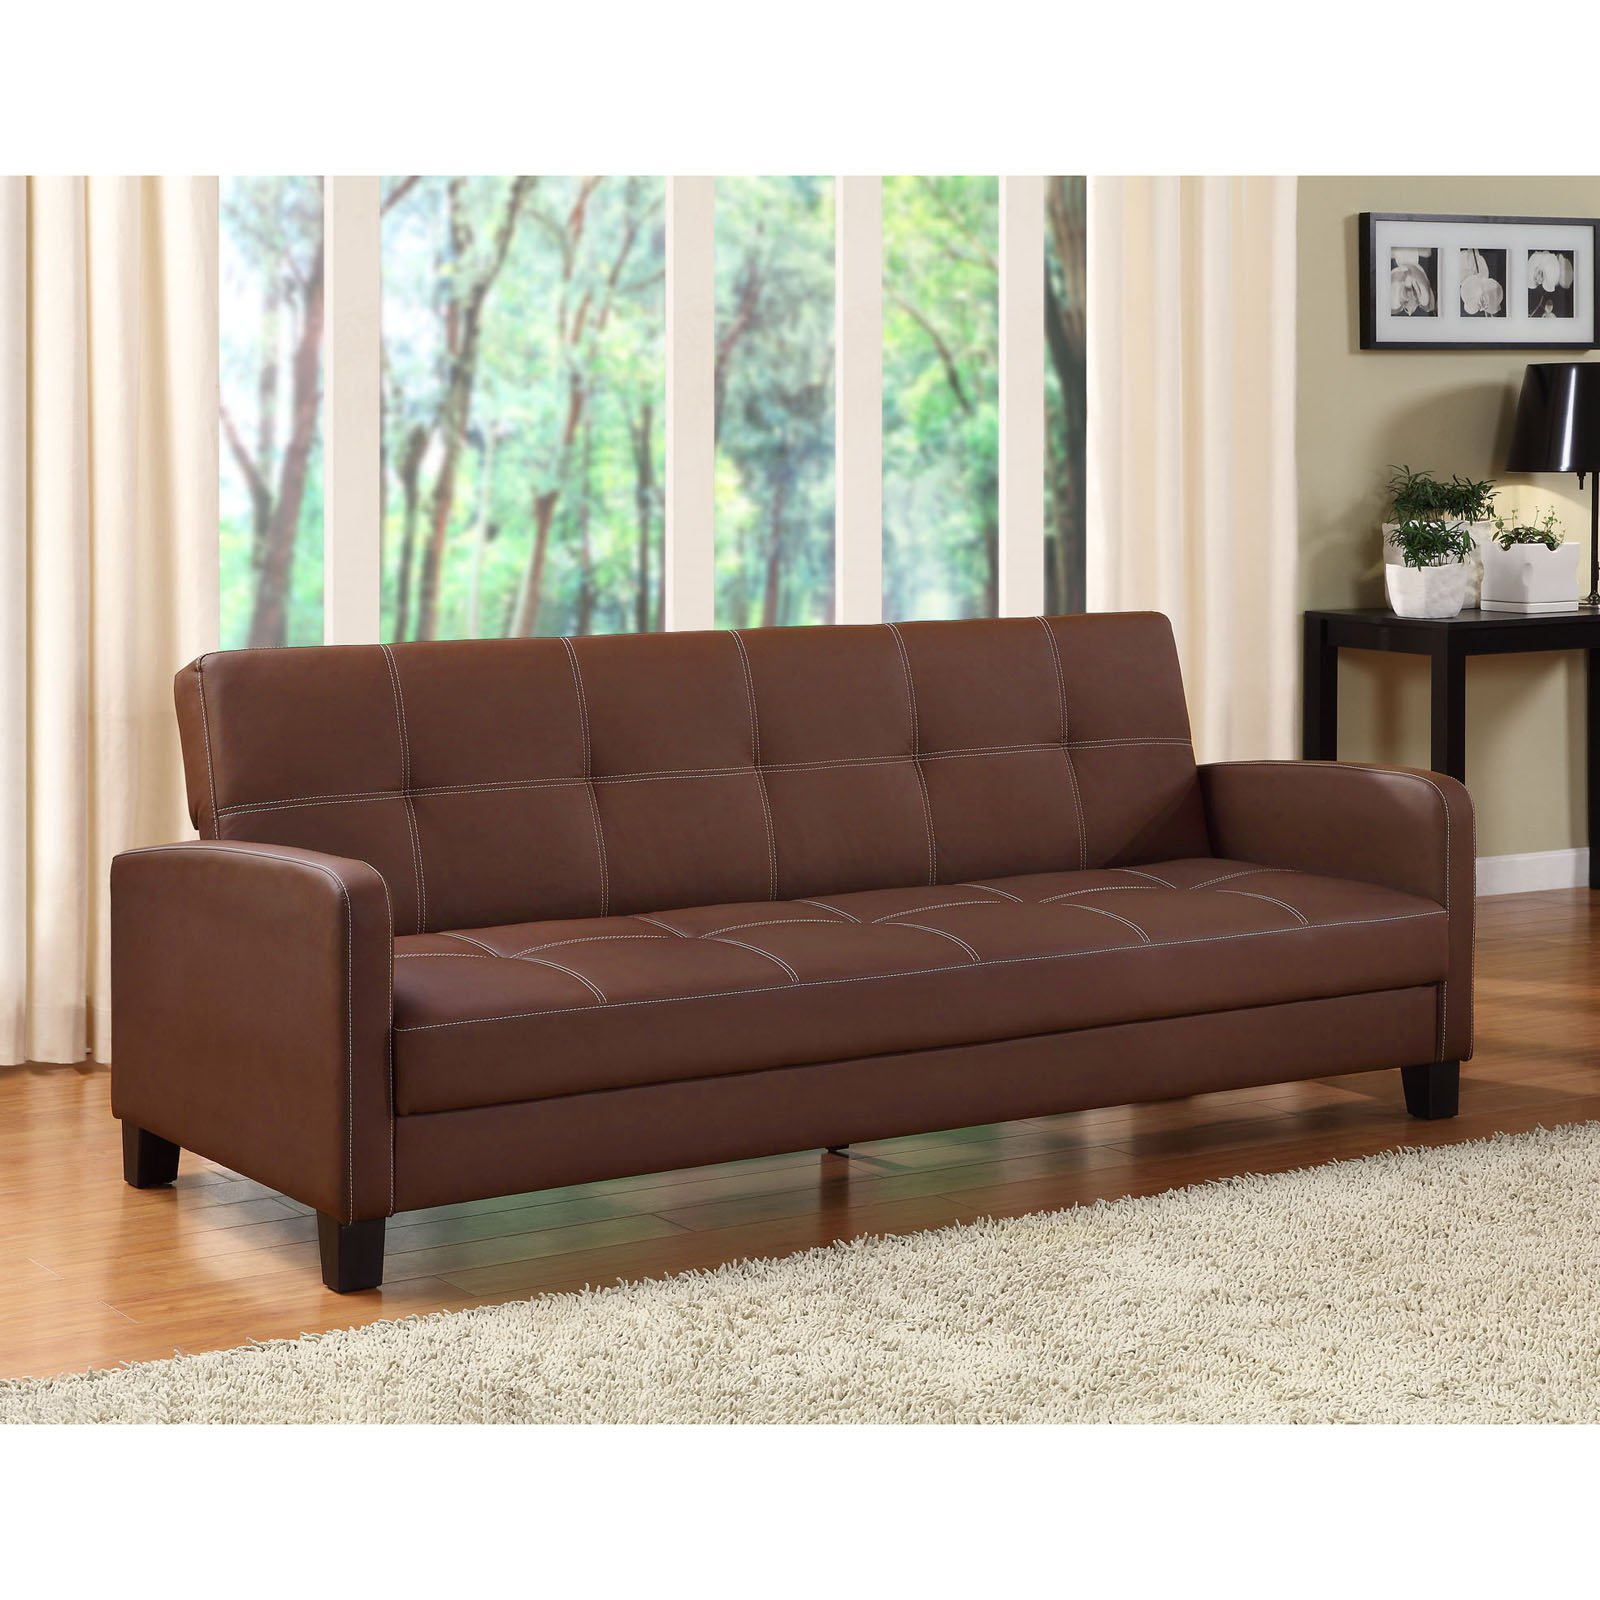 DHP Delaney Futon Couch Sofa Sleeper, Multiple Colors by Dorel Home Products